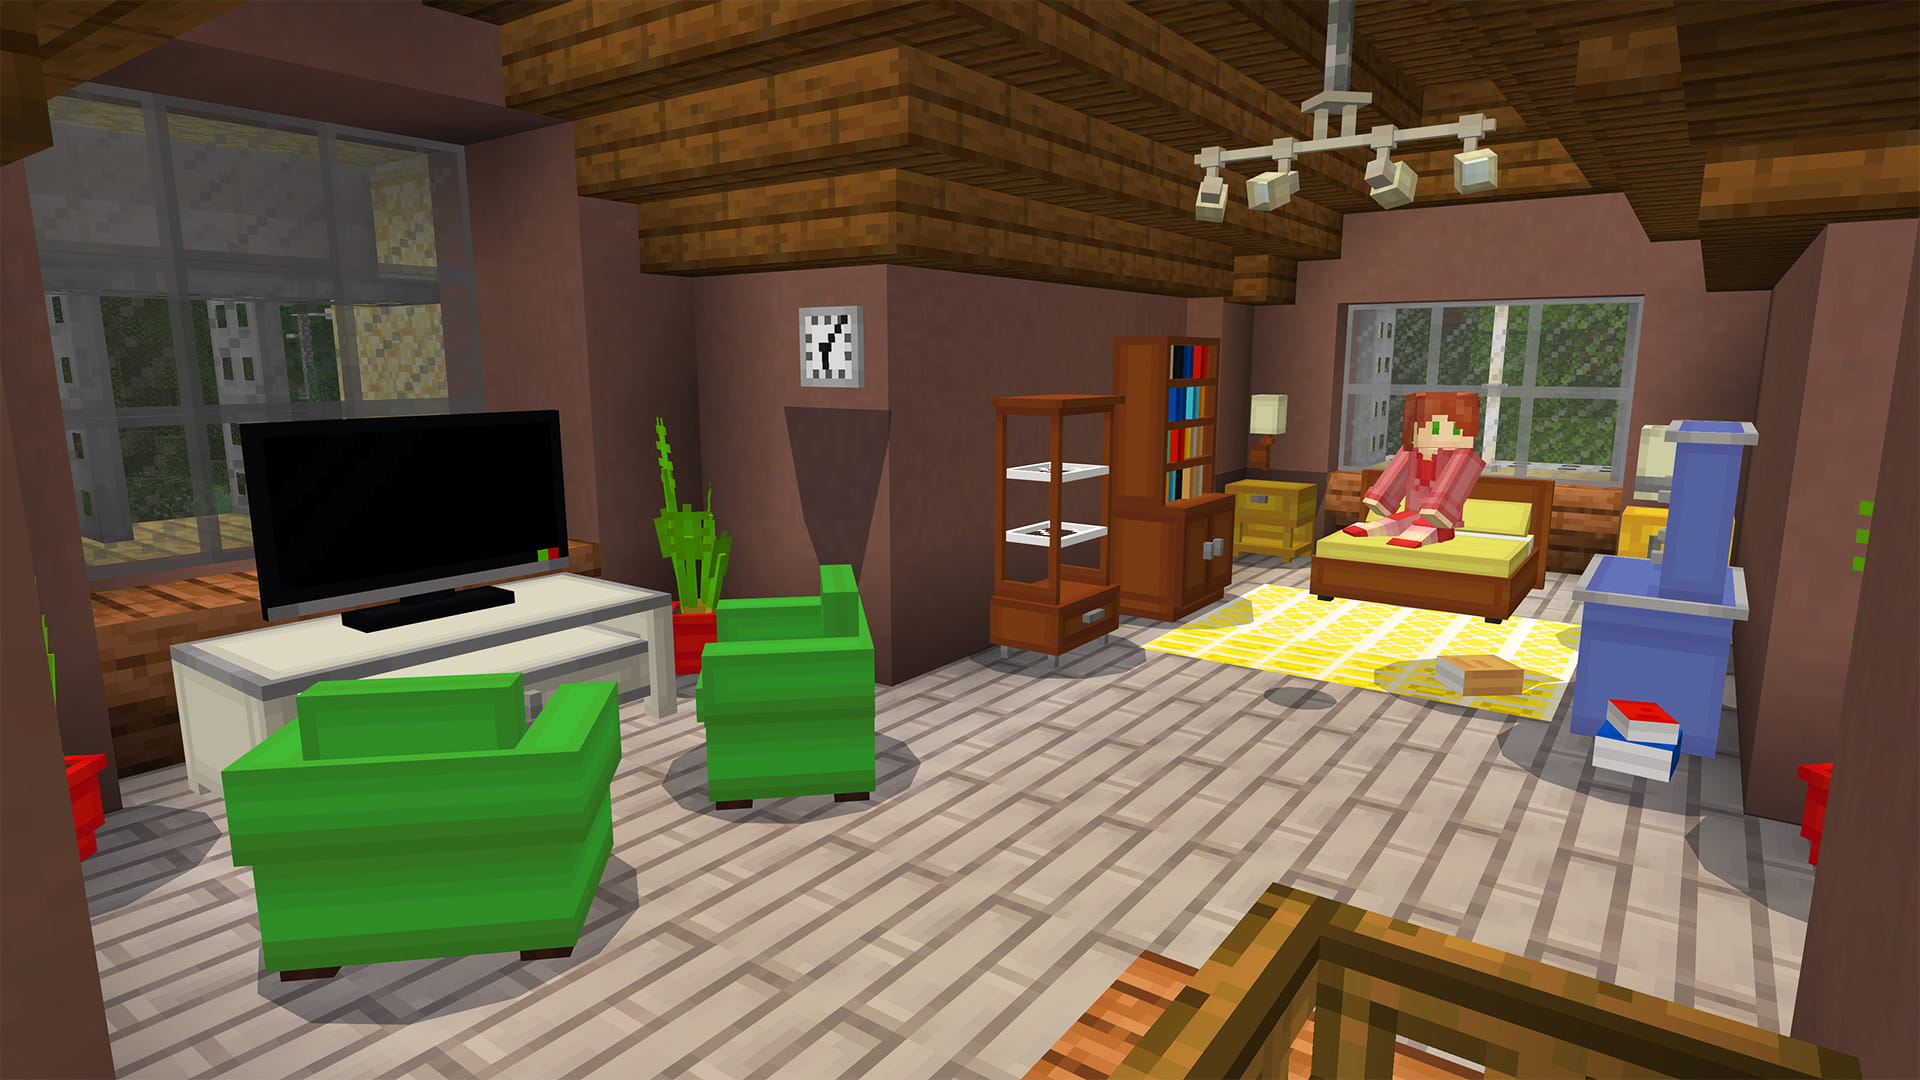 Furniture Mod Spark Squared Minecraft Bauteam